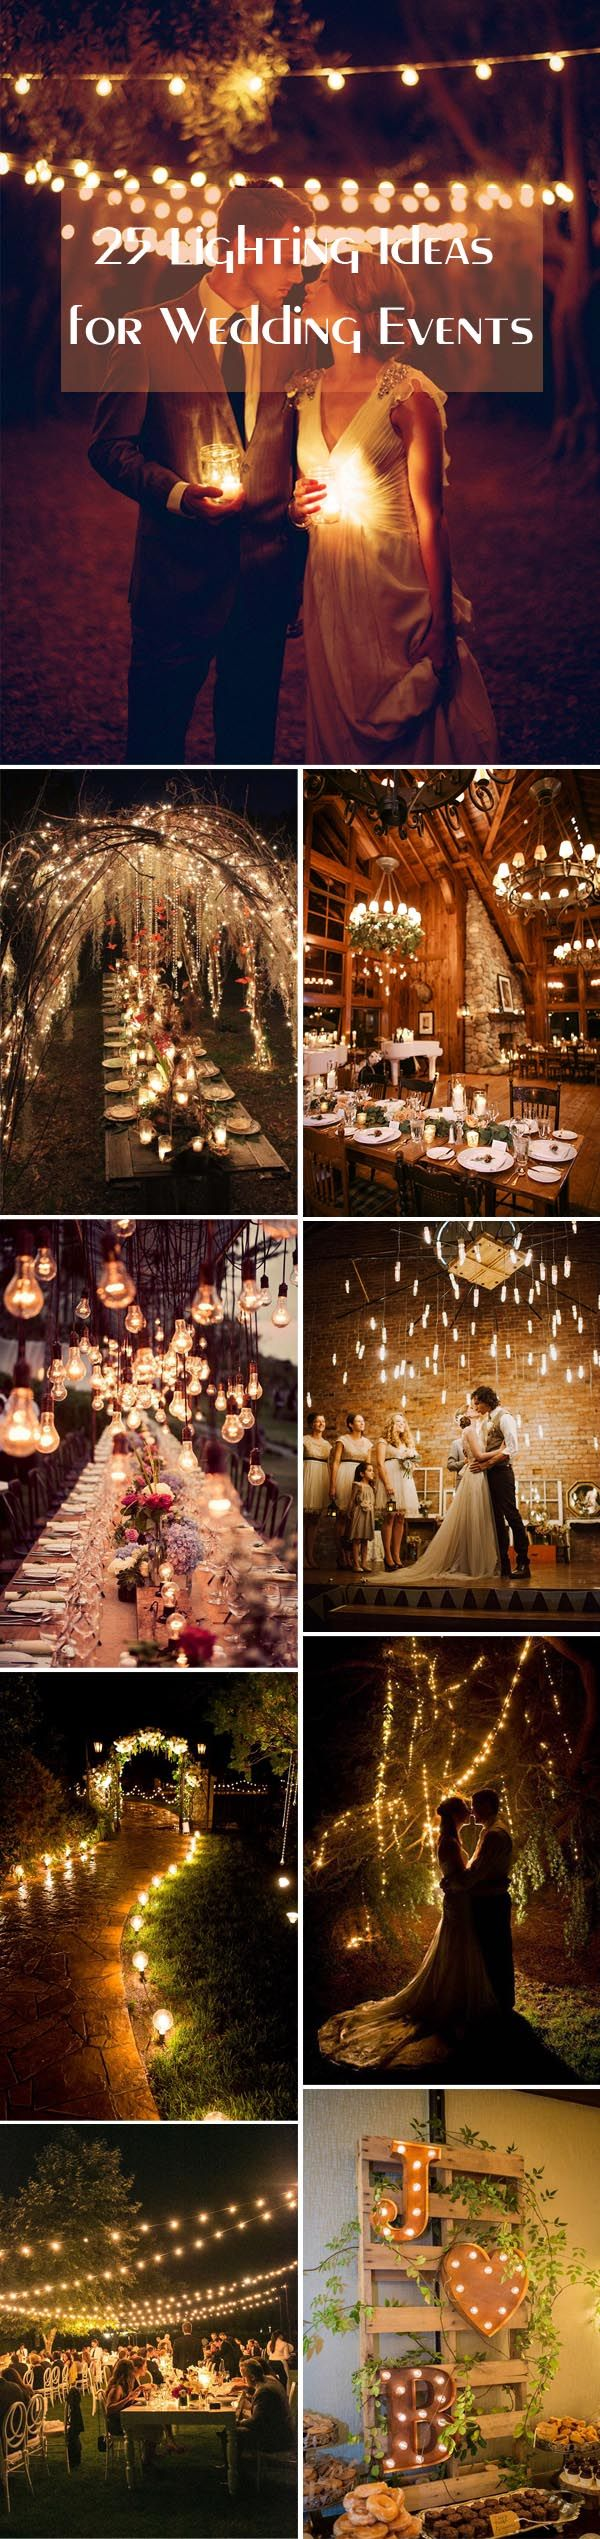 25 stunning lighting ideas for wedding events